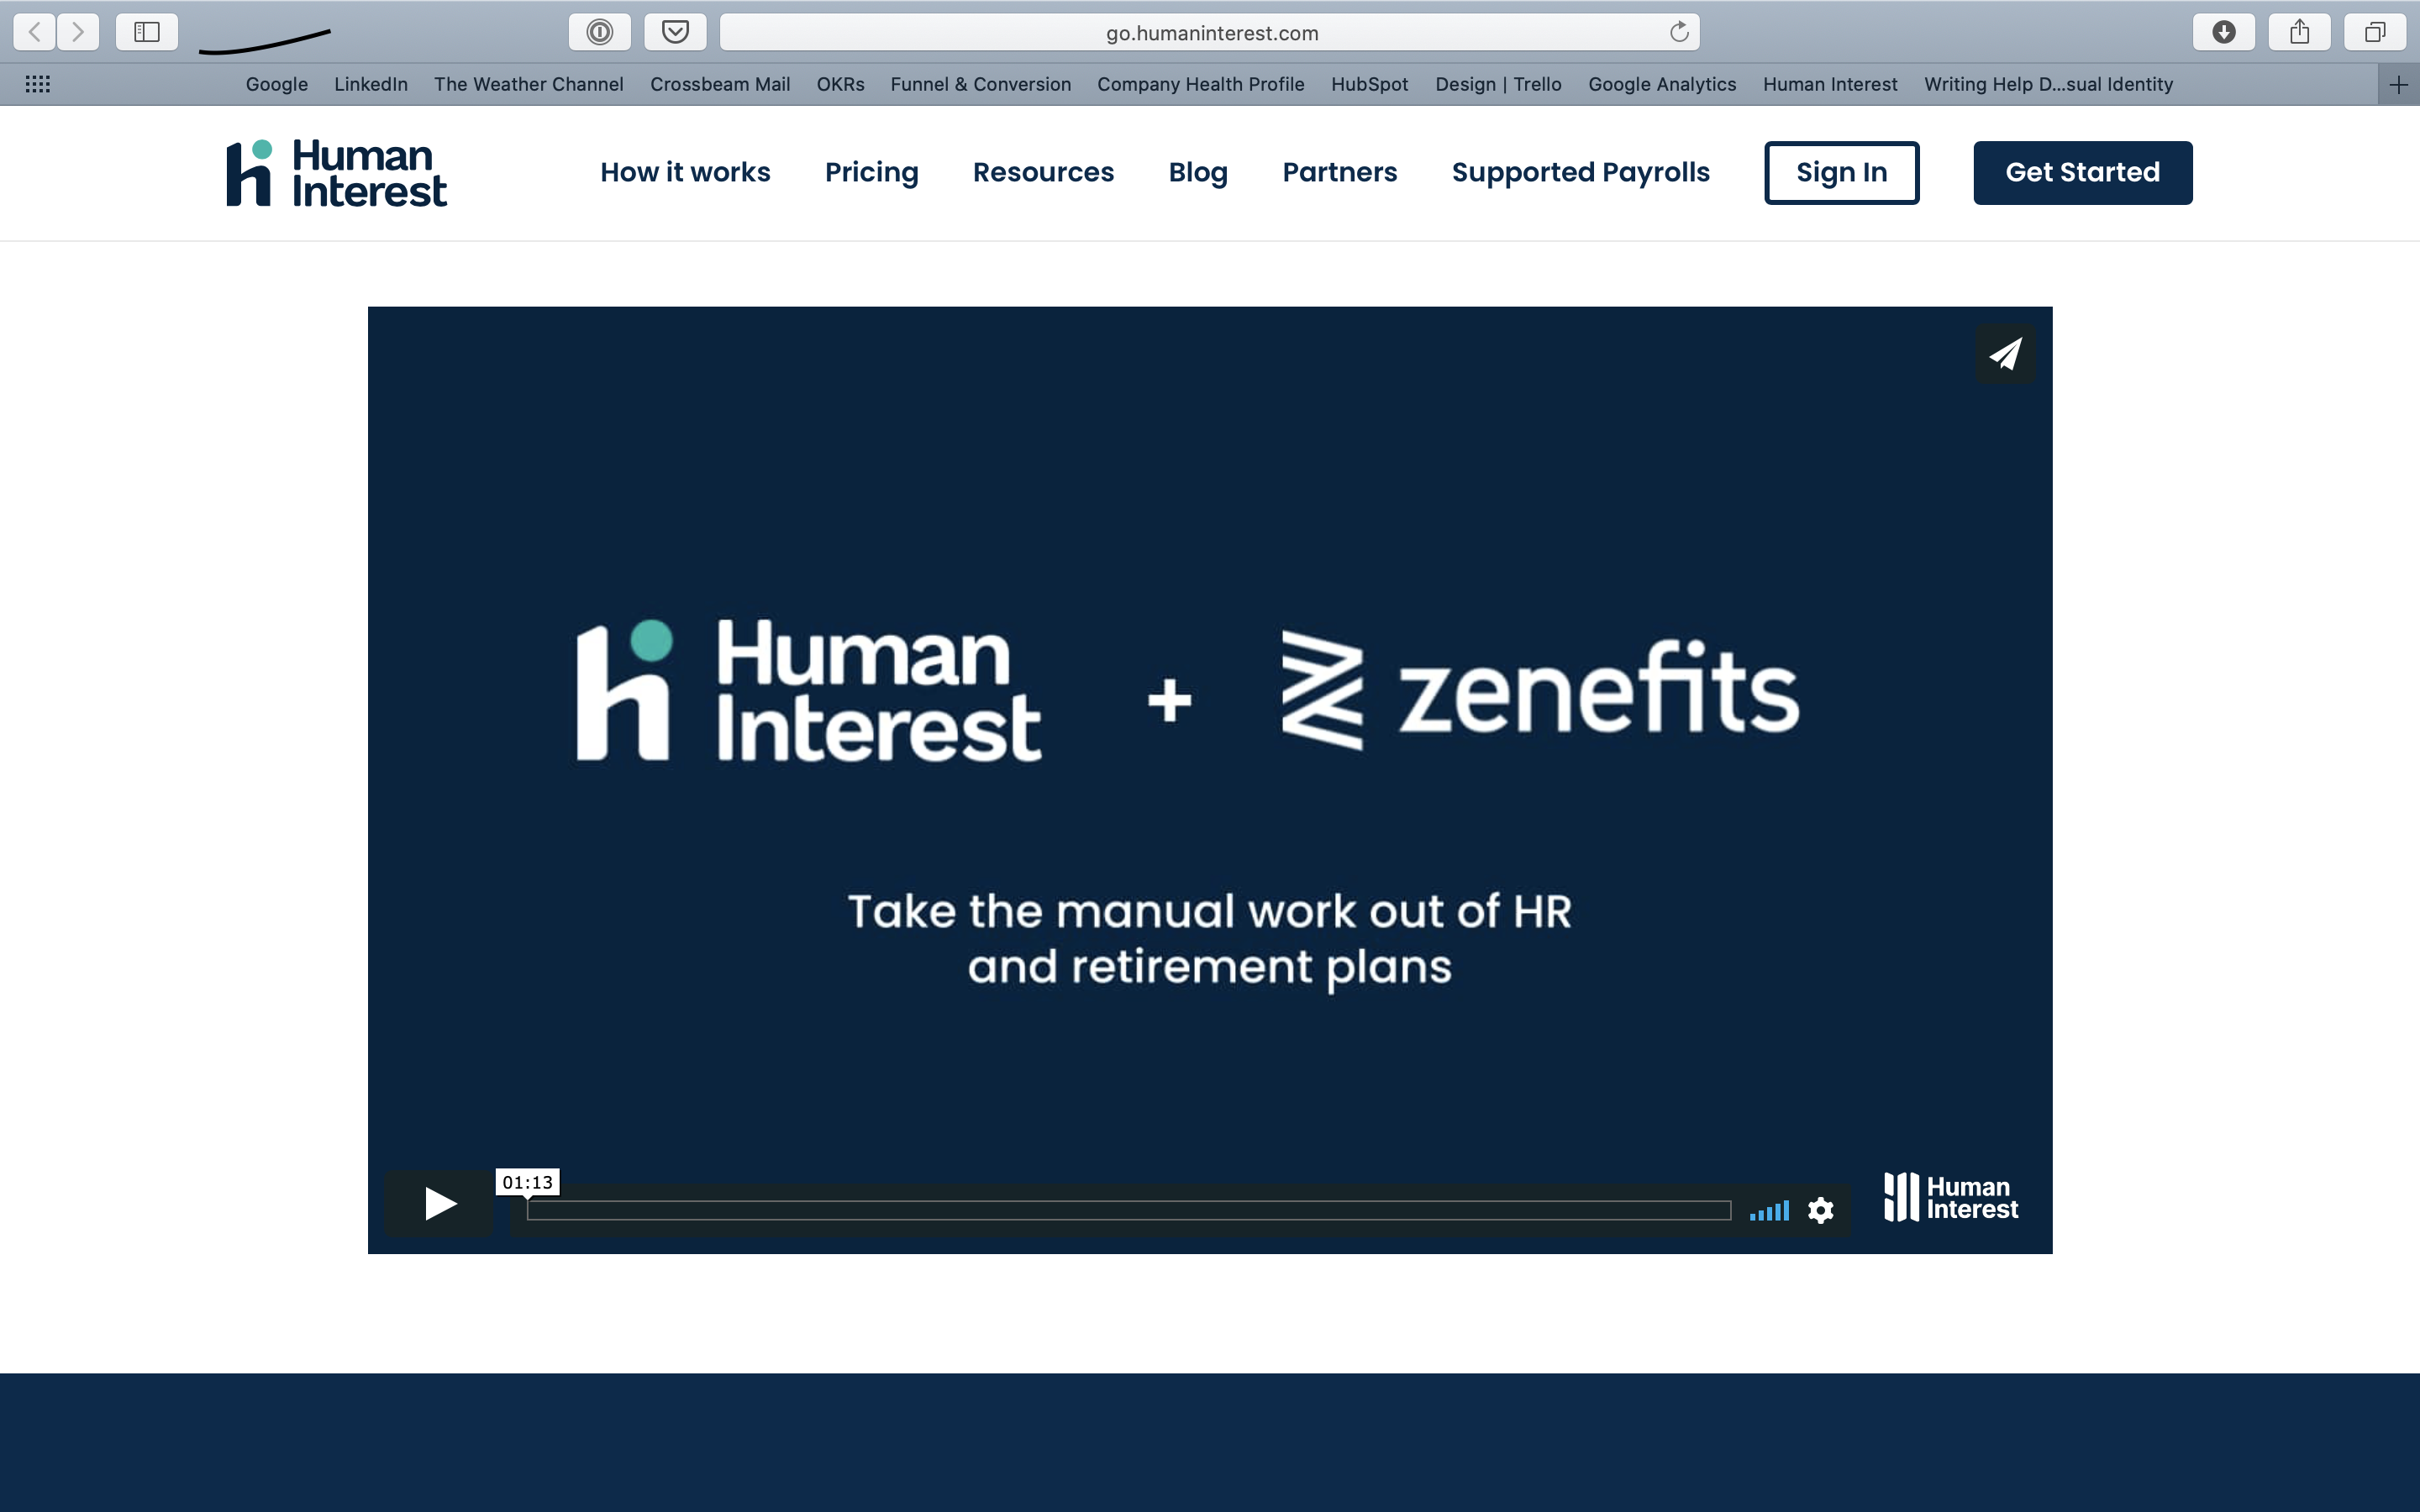 Zenefits and Human Interest partner page